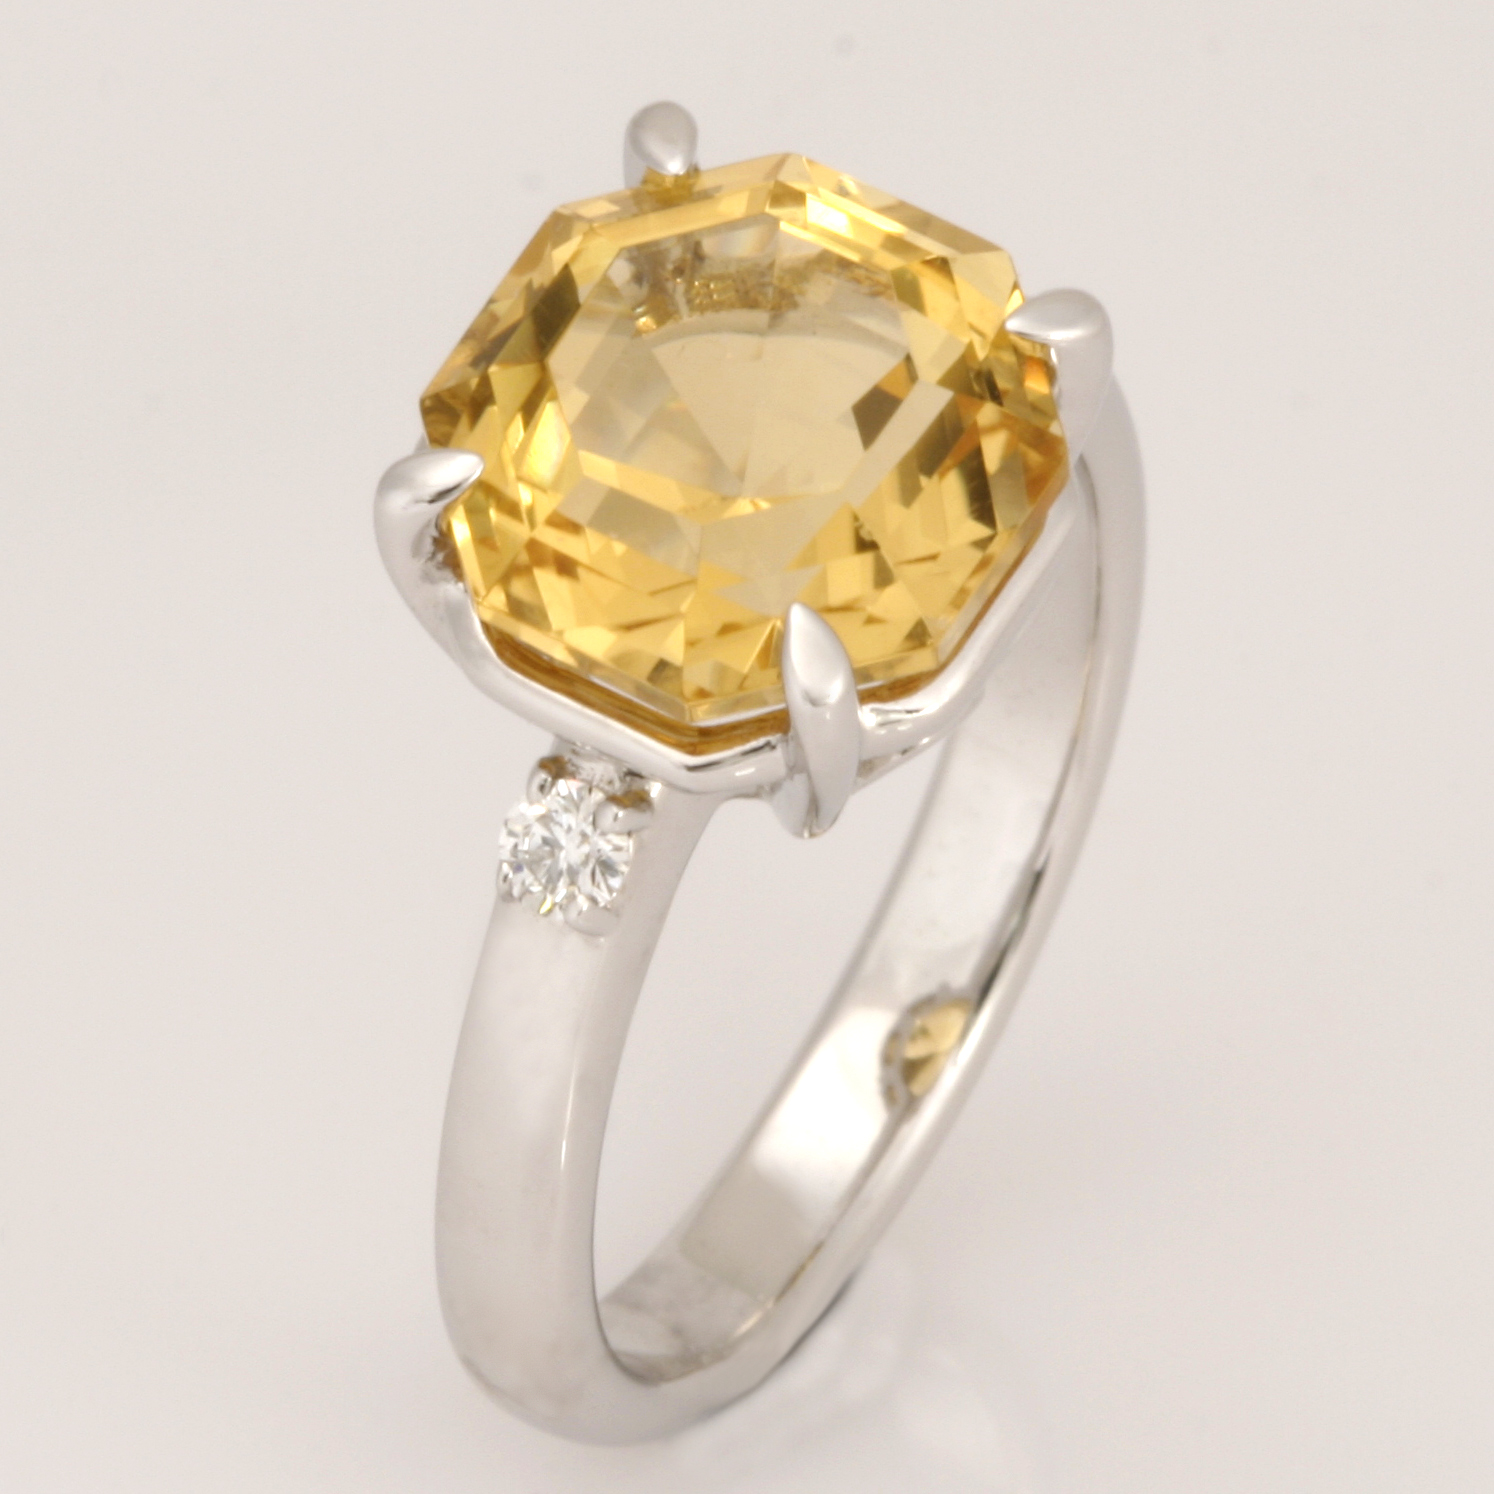 R155 9ct white gold 10mm octagonal citrine ring with 2 x 0.05ctea diamonds on the shoulders $850